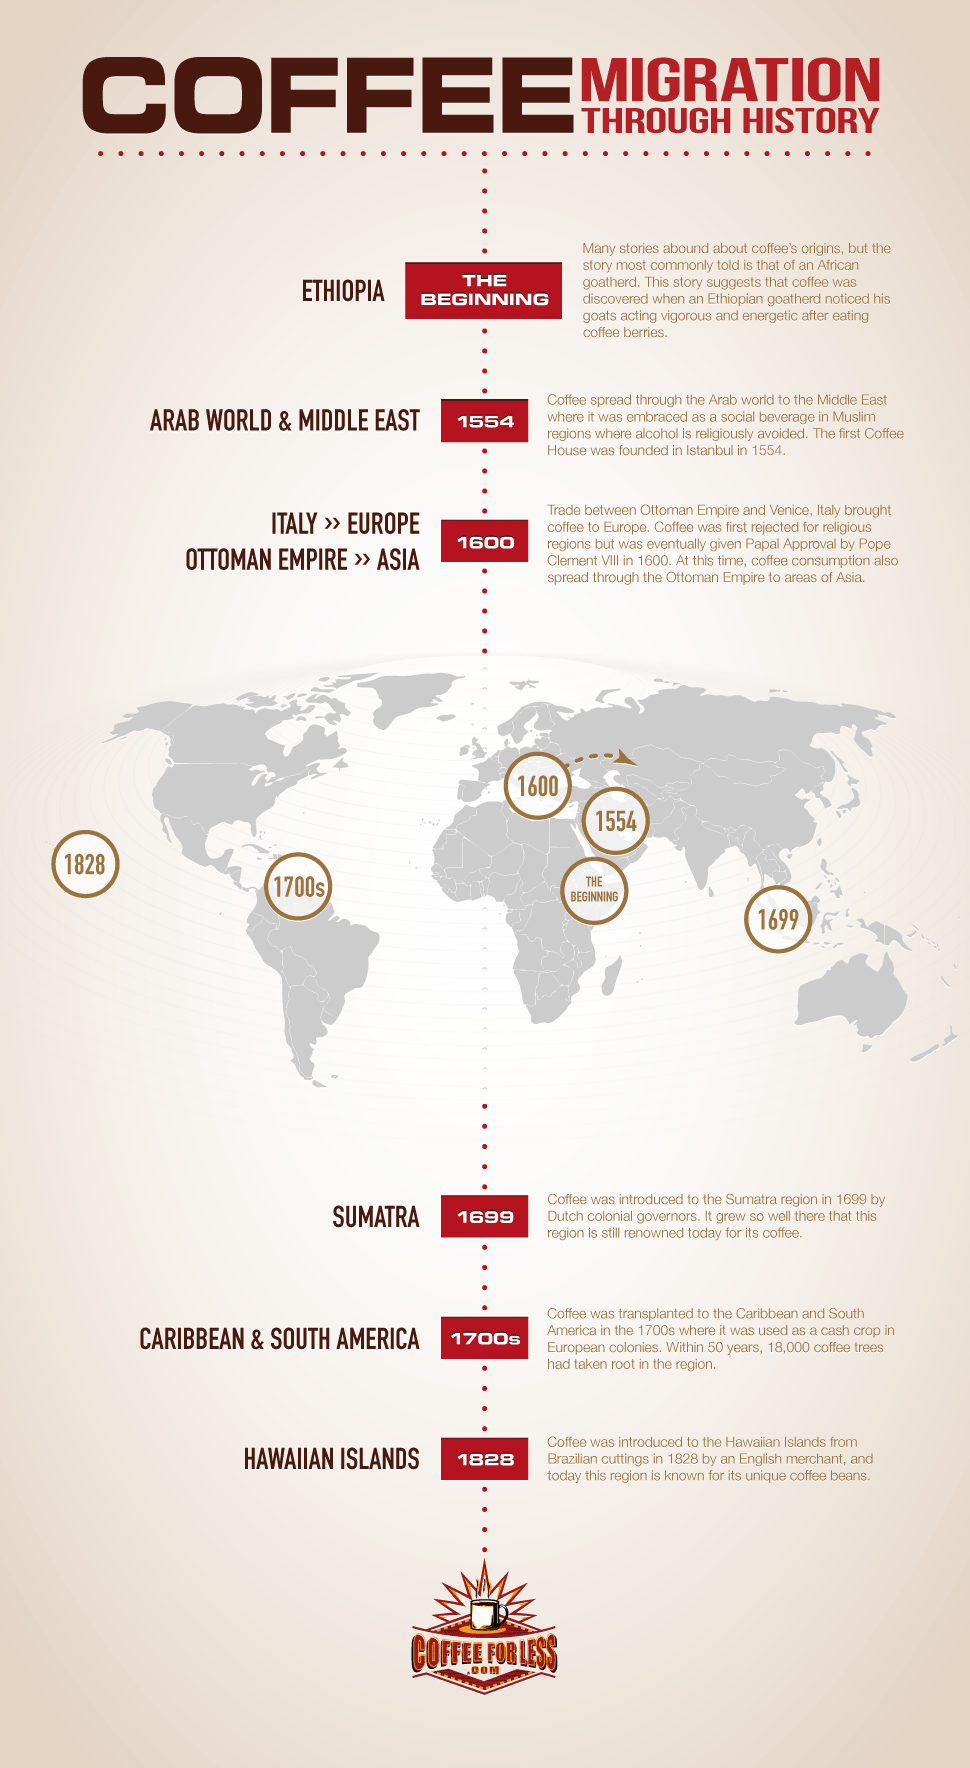 Follow coffee's path through history as it spreads all over the world, becoming the global commodity we know it to be today.